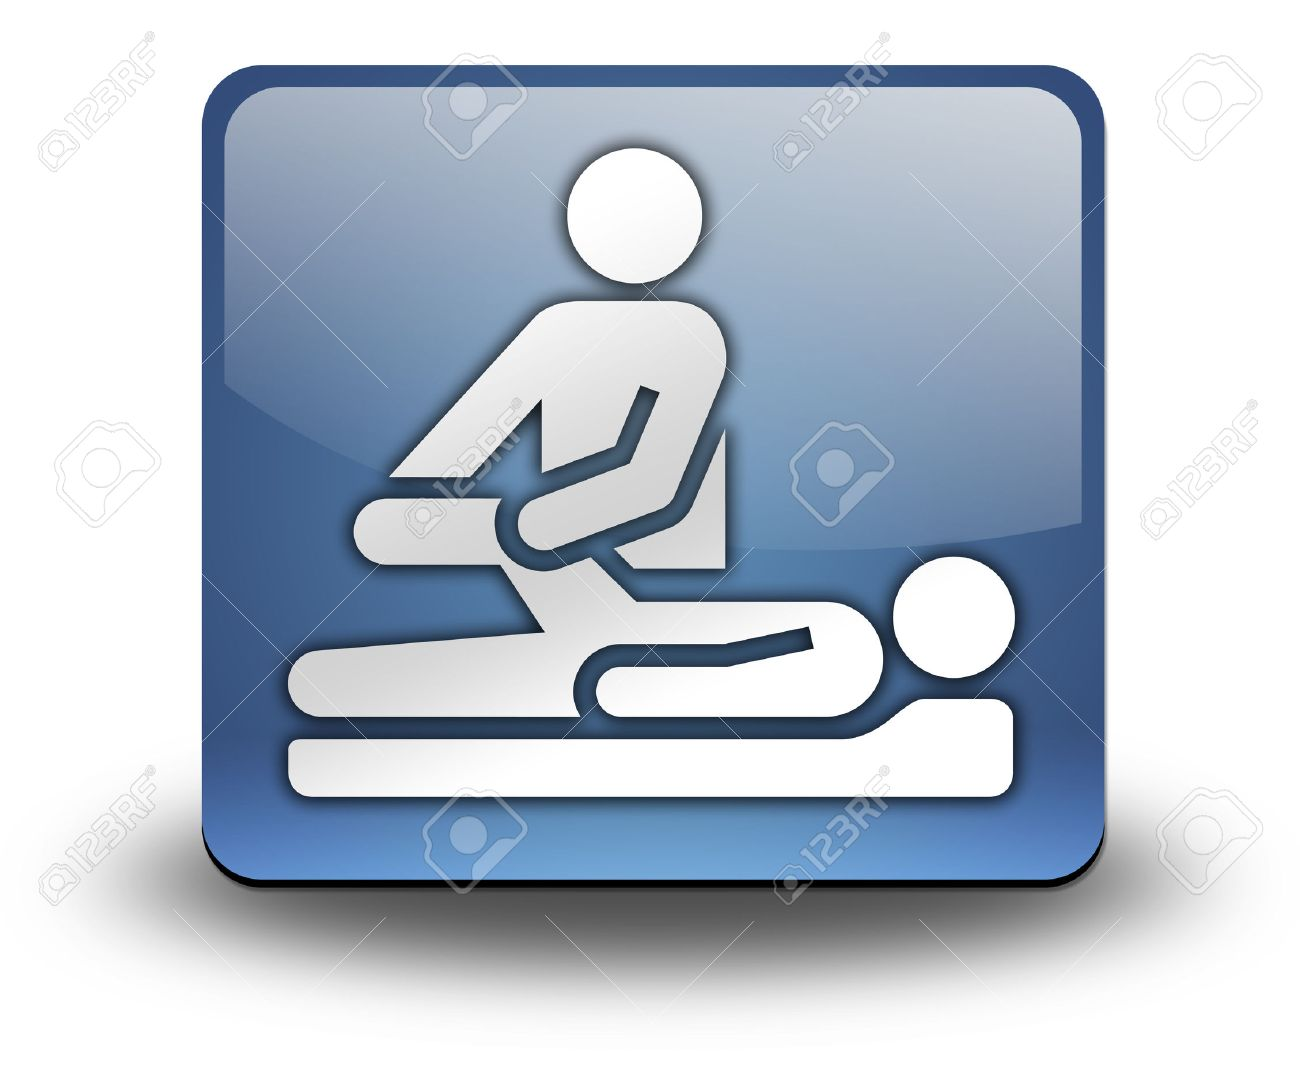 1300x1070 2,368 Physiotherapy Stock Vector Illustration And Royalty Free